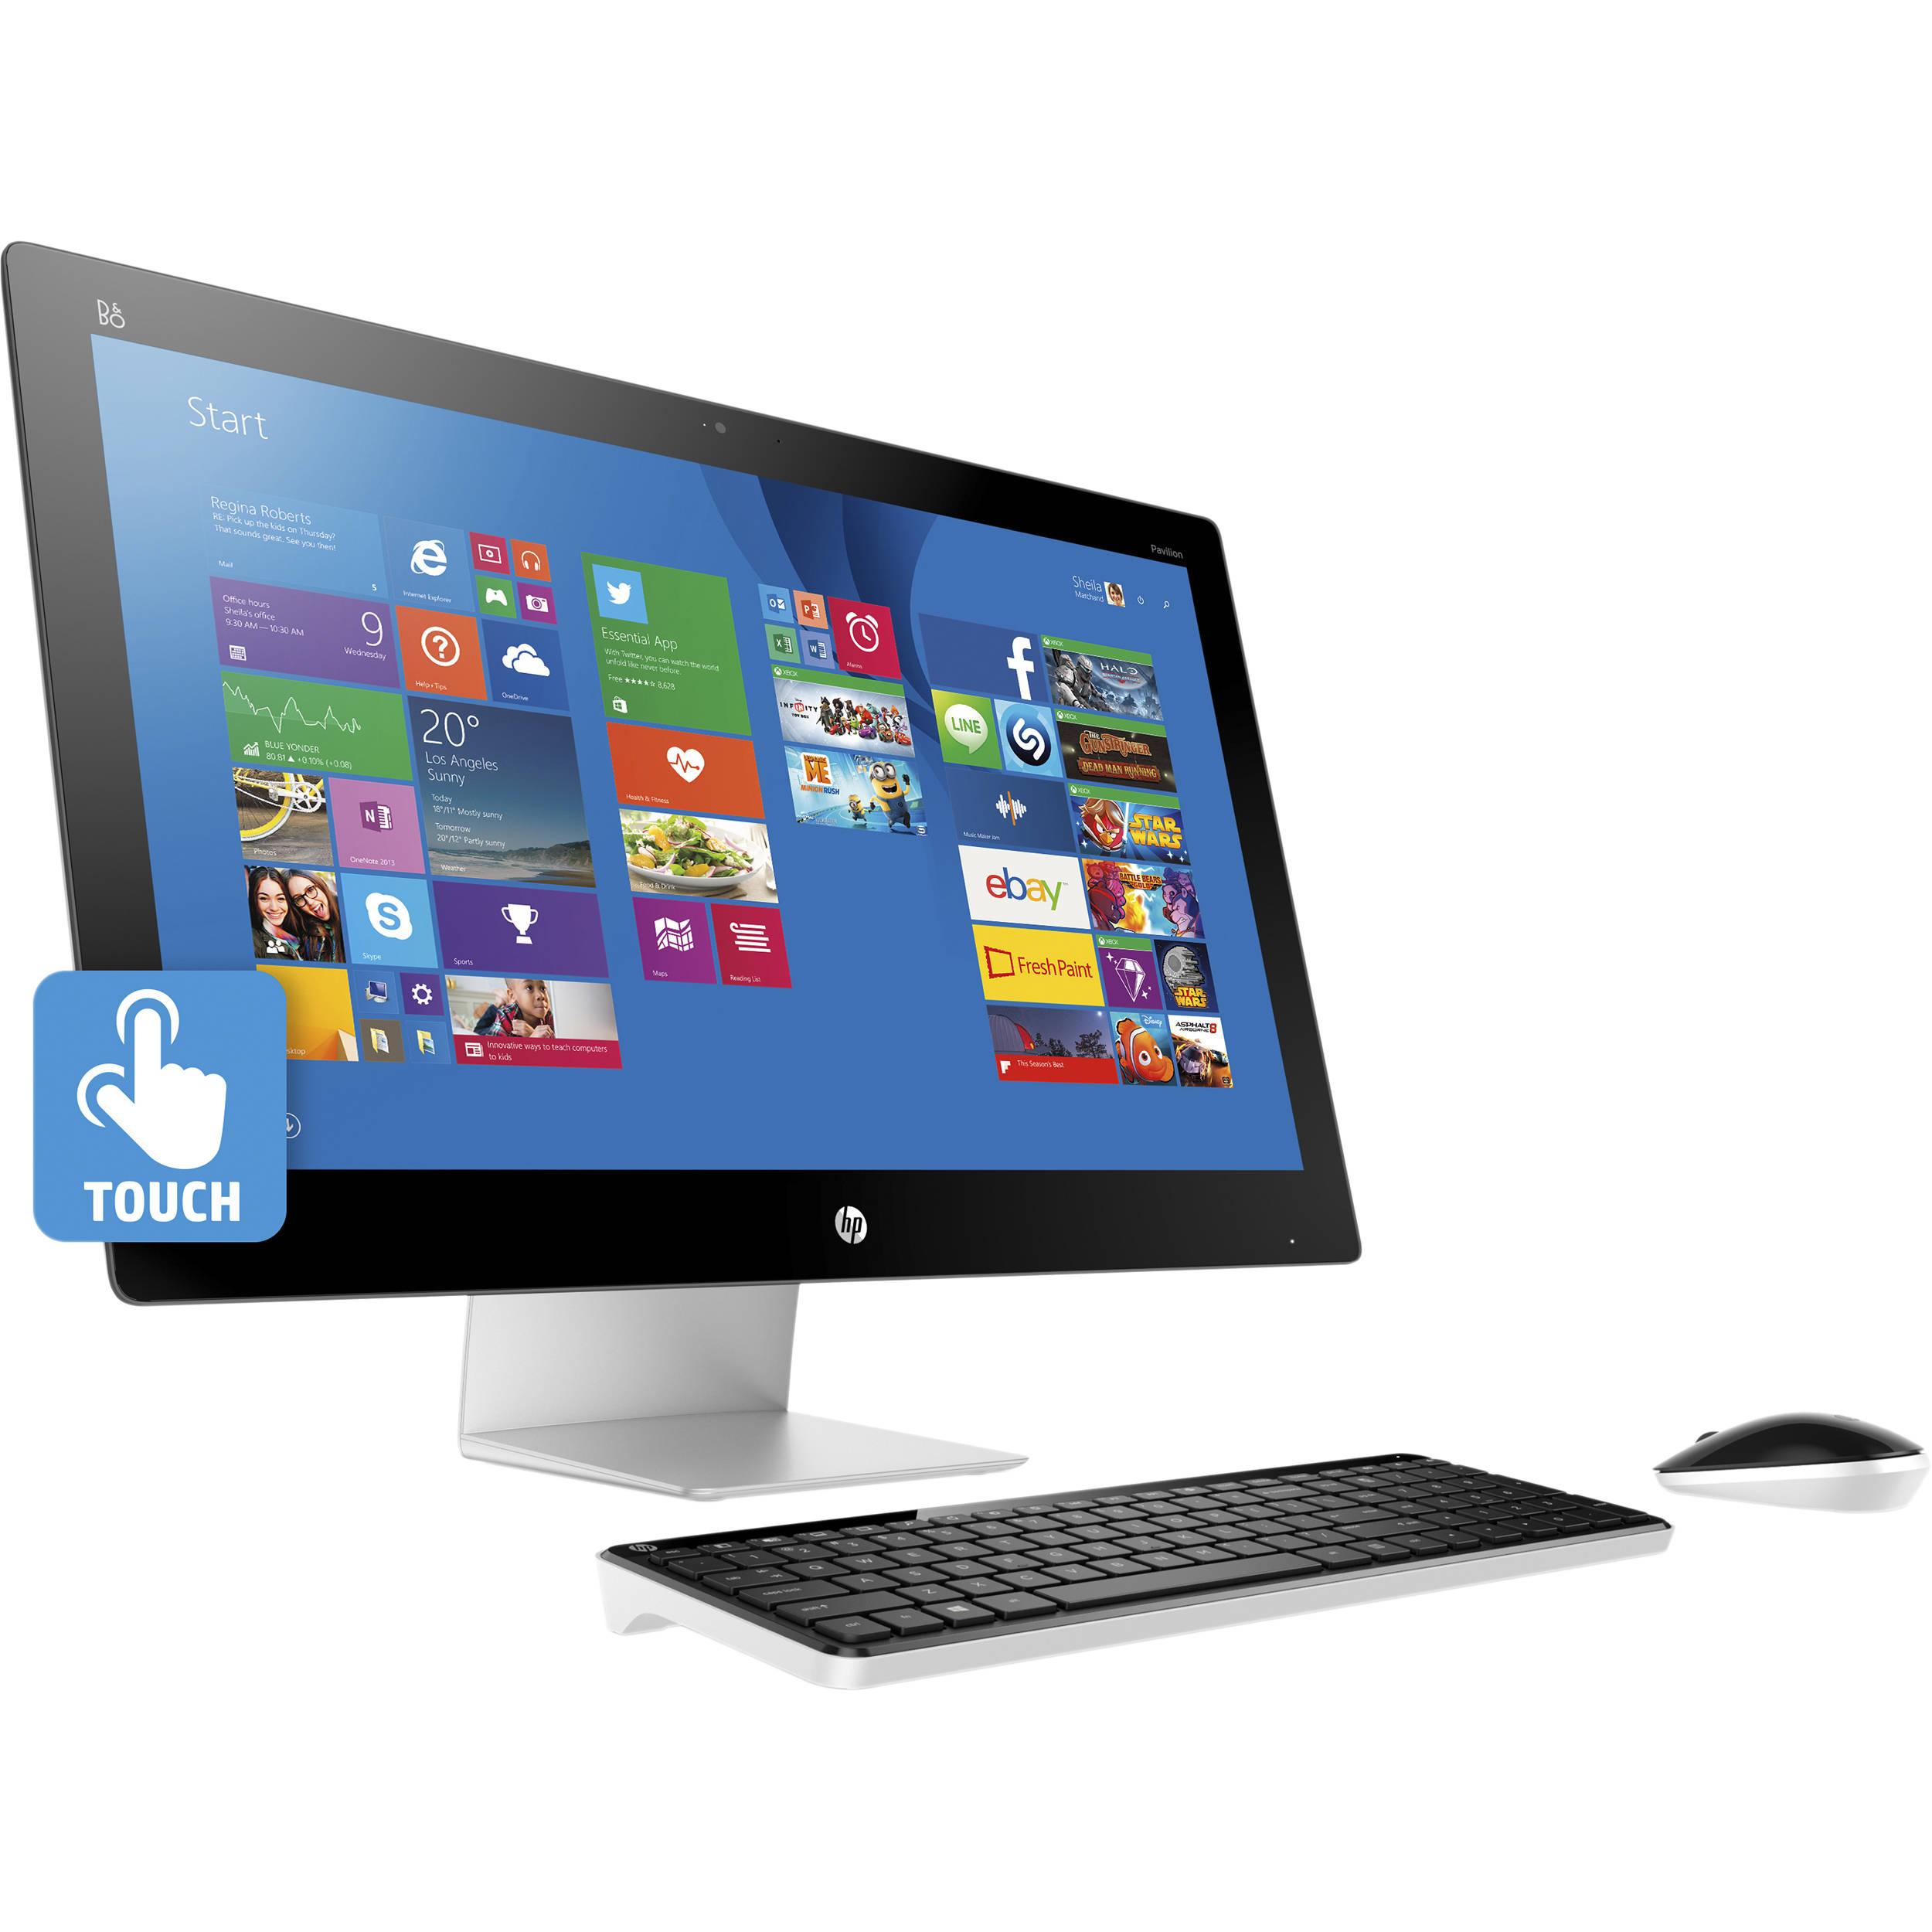 Hp Released New Pavilion All In One Desktop Pc